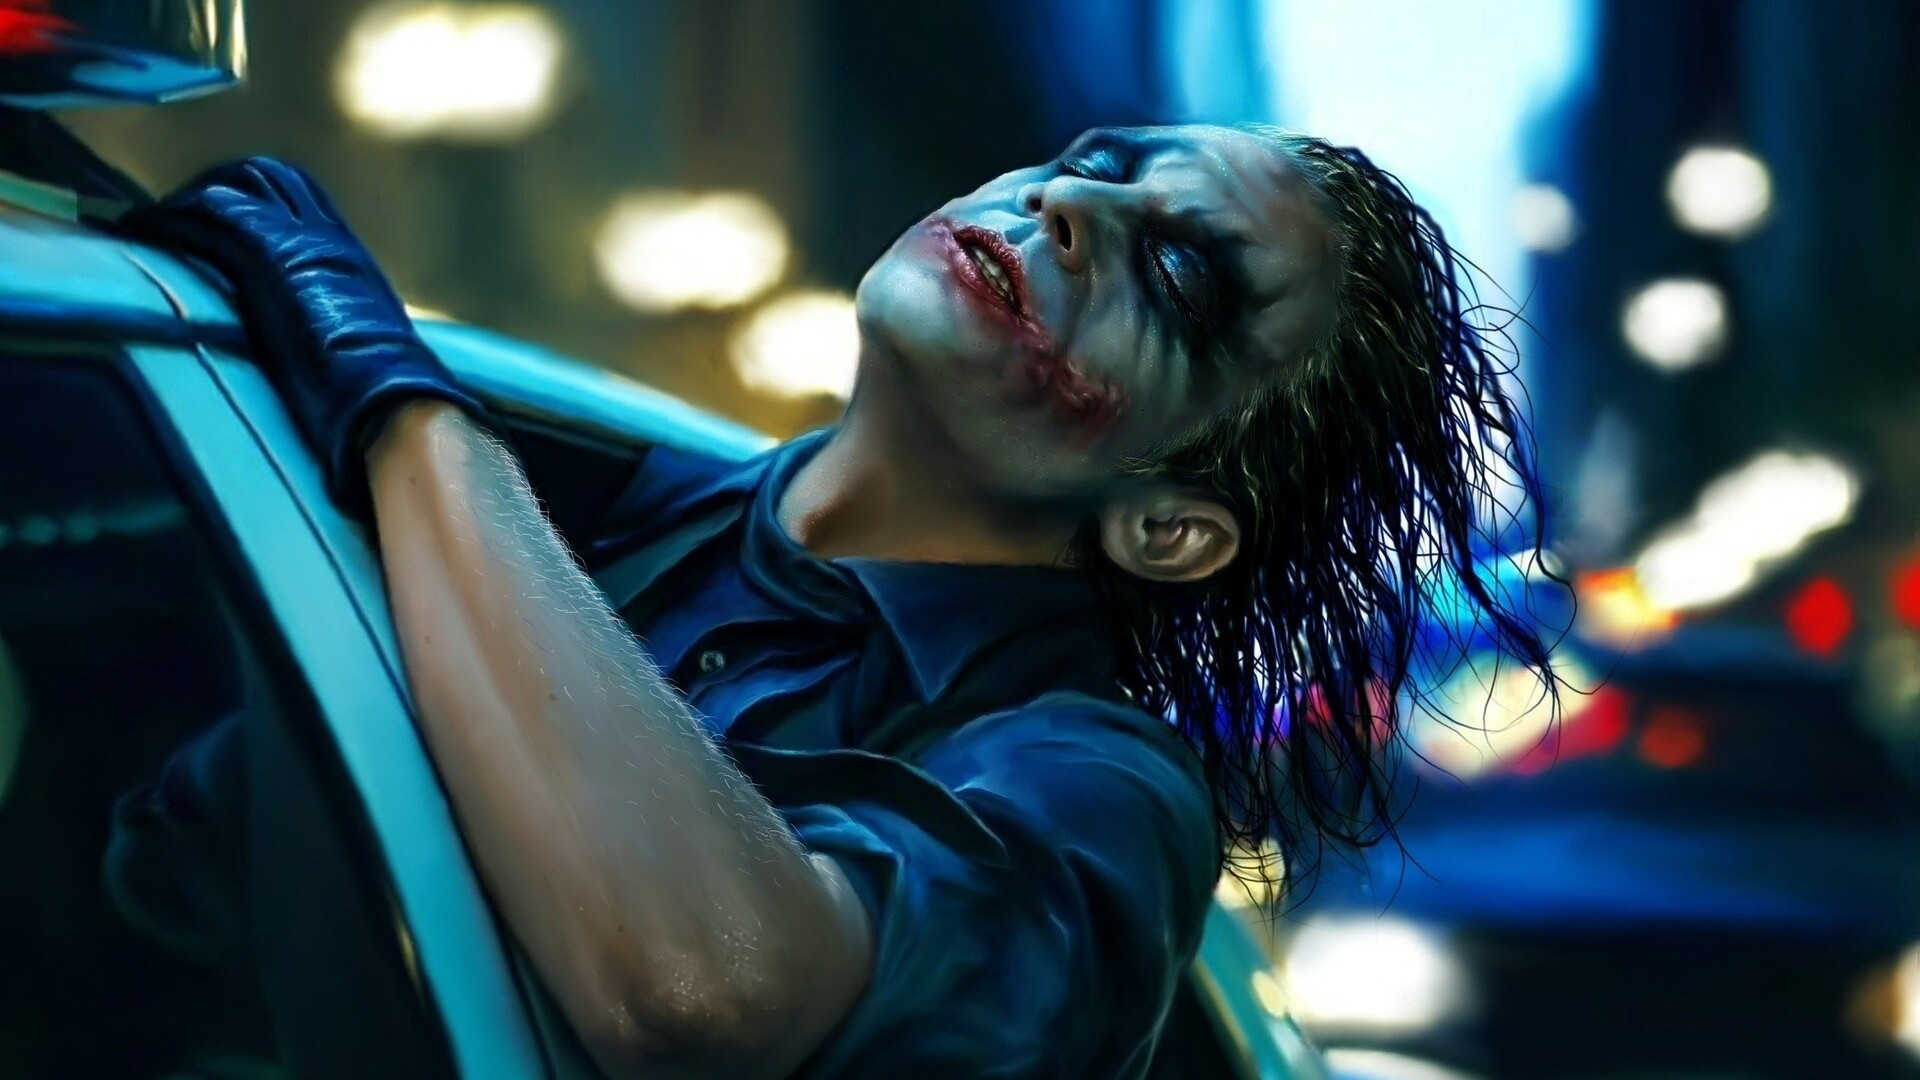 1920x1080 The Dark Knight Joker Artwork Laptop Full Hd 1080p Hd 4k